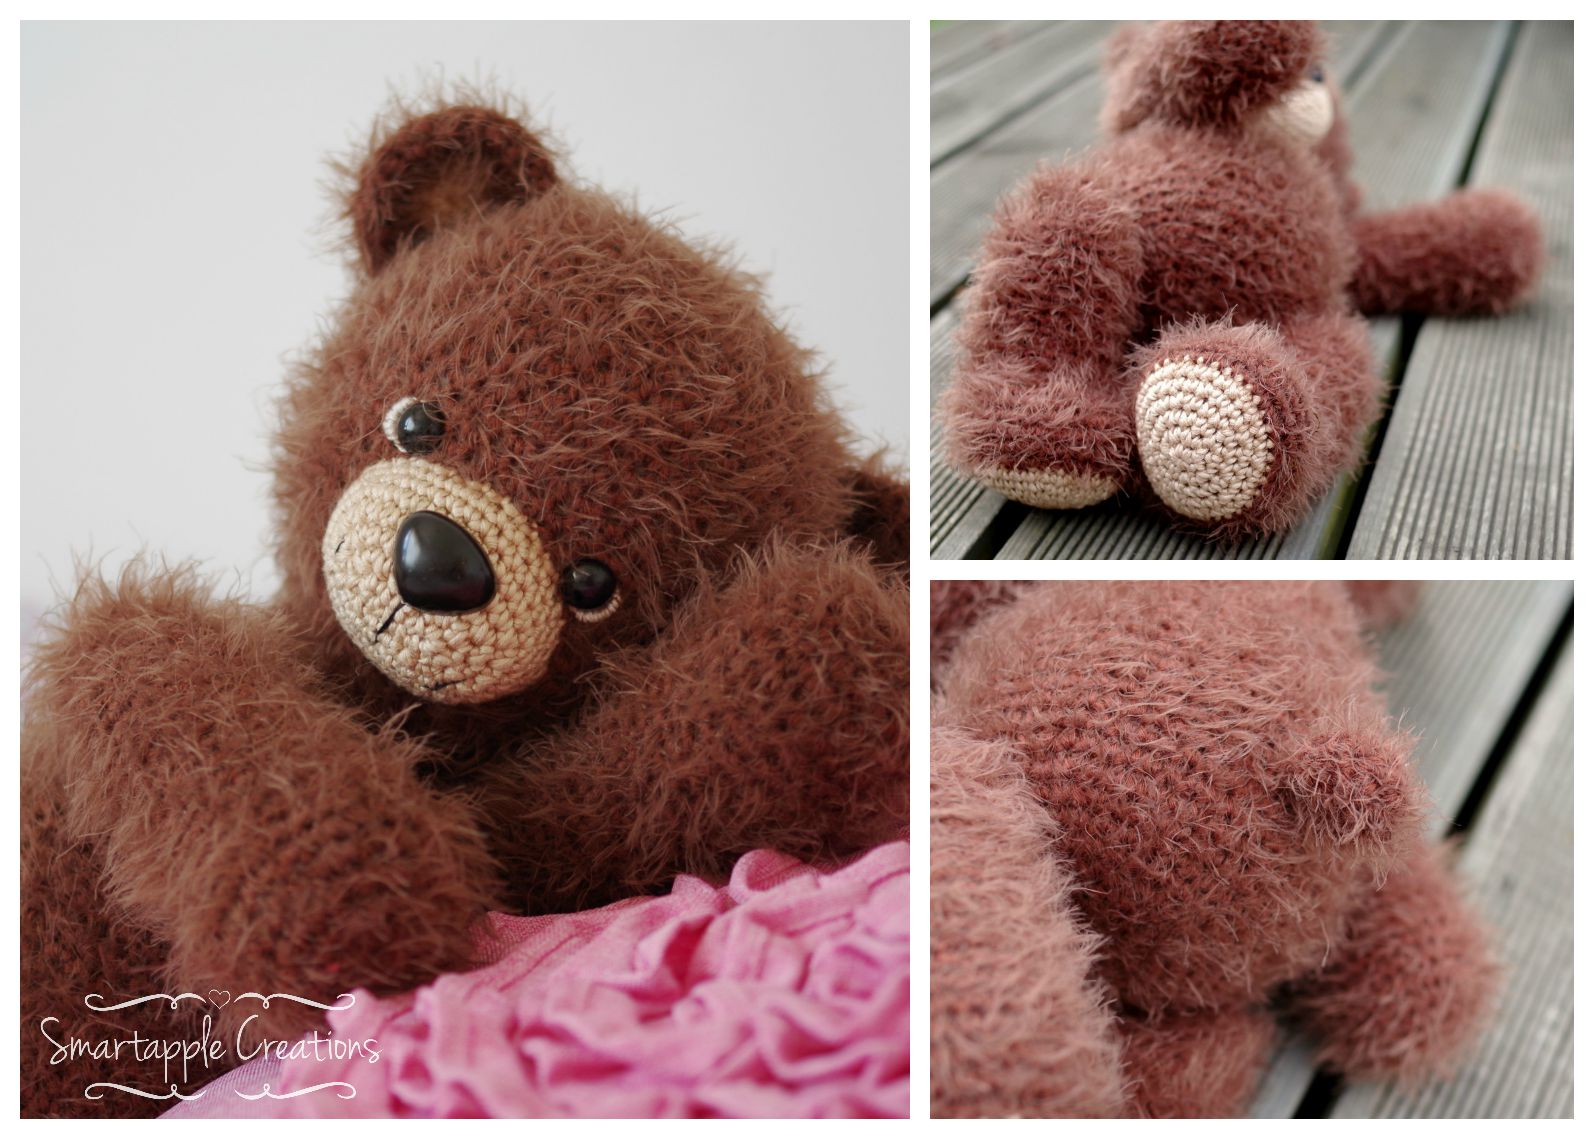 Amigurumi Today Bear : Smartapple Creations - amigurumi and crochet: Cuddly teddy ...